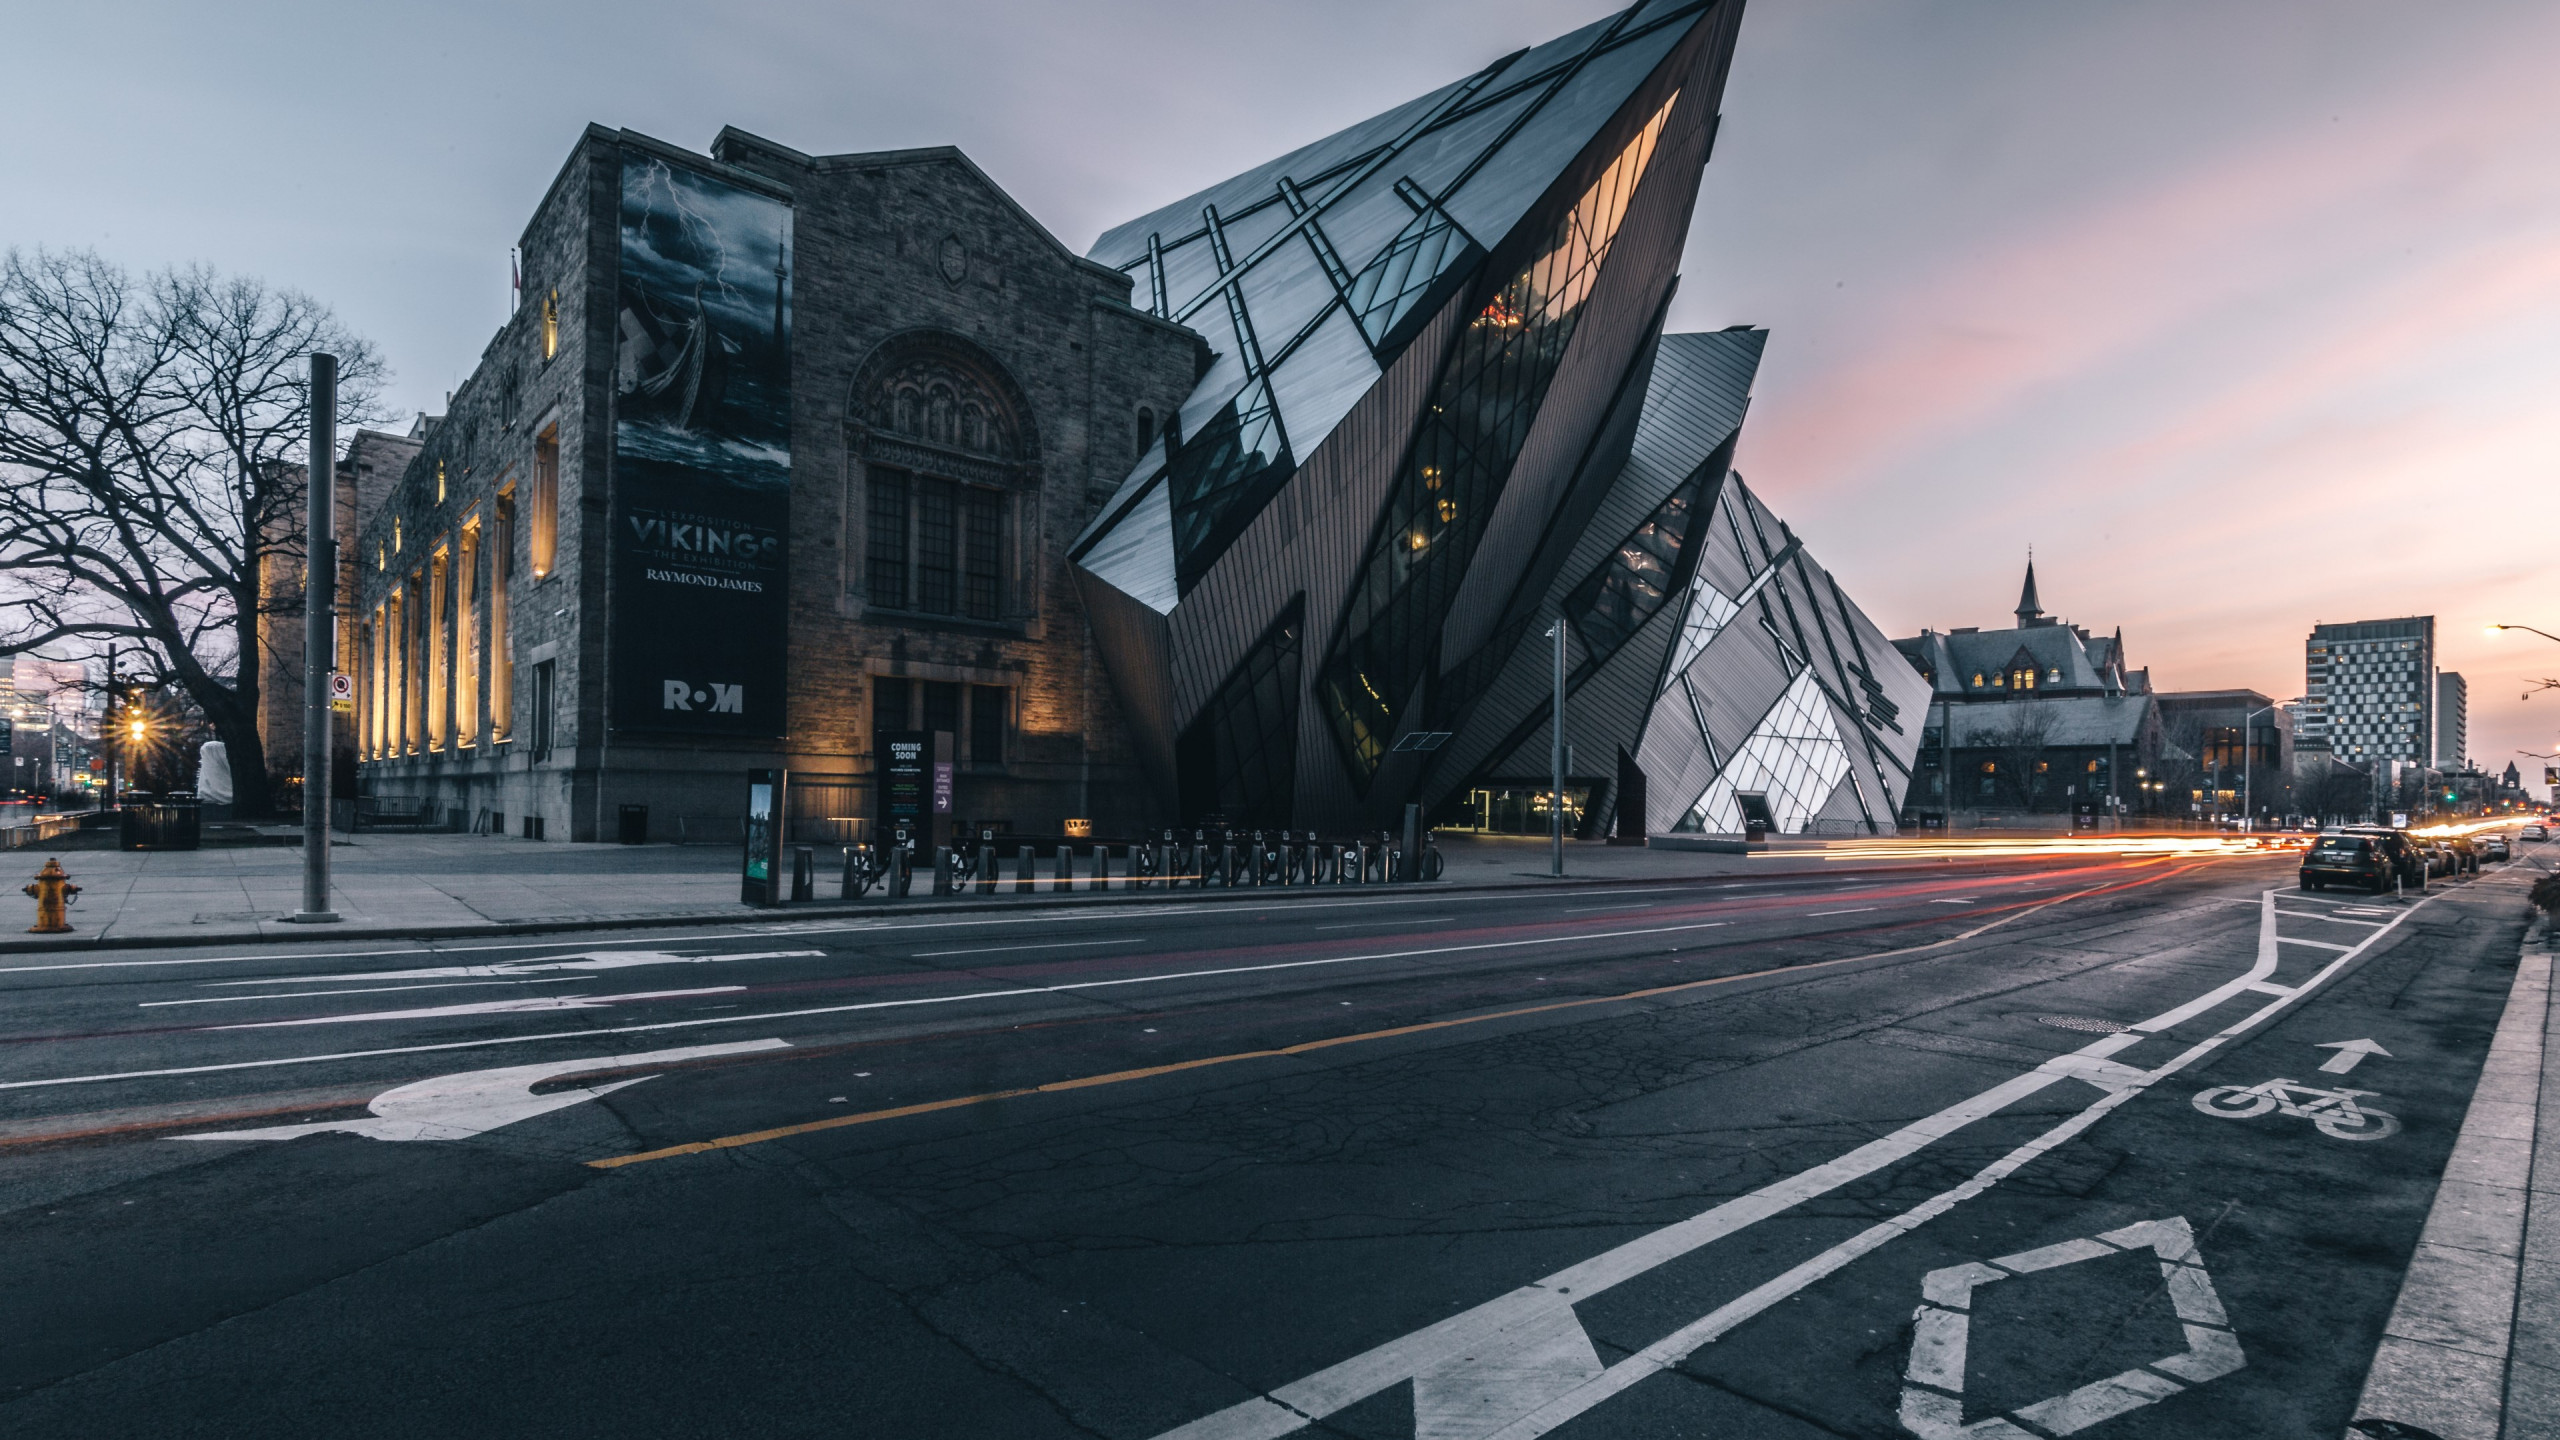 Royal Ontario Museum at sunset wallpaper 2560x1440